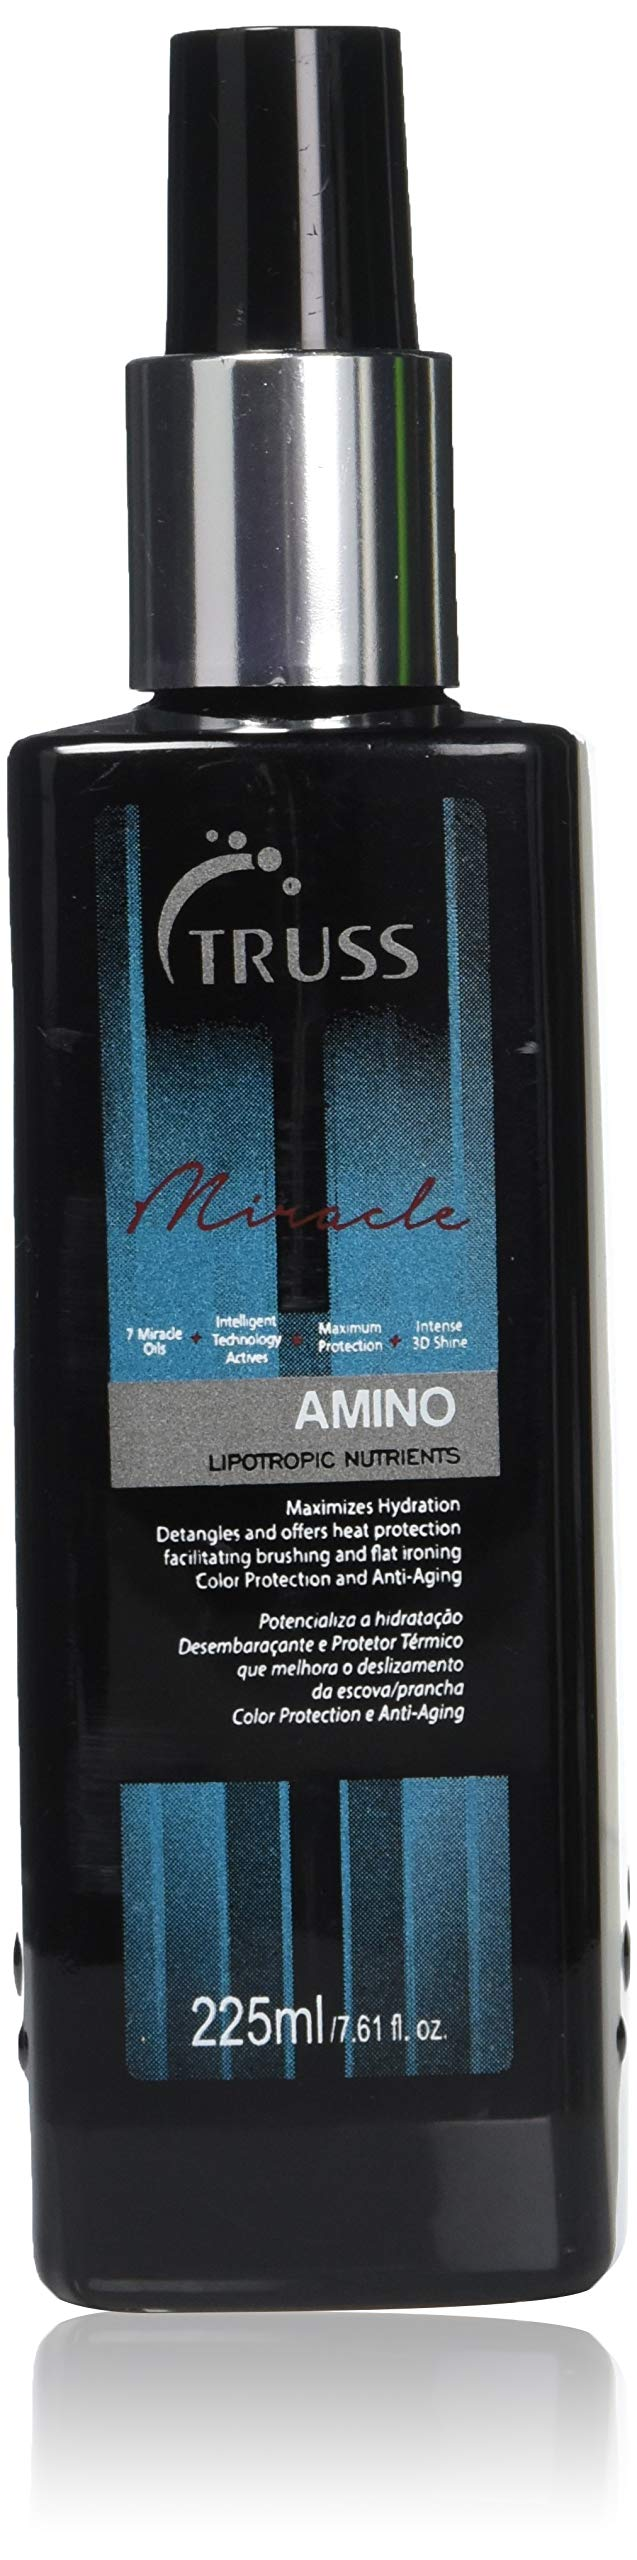 TRUSS Professional Amino Miracle - Heat Protectant Spray for Hair, Seals Cuticle, Repairs Dry Damaged Hair, Frizz Control, Detangles, Adds Shine, Color Protection, Anti-Aging by TRUSS